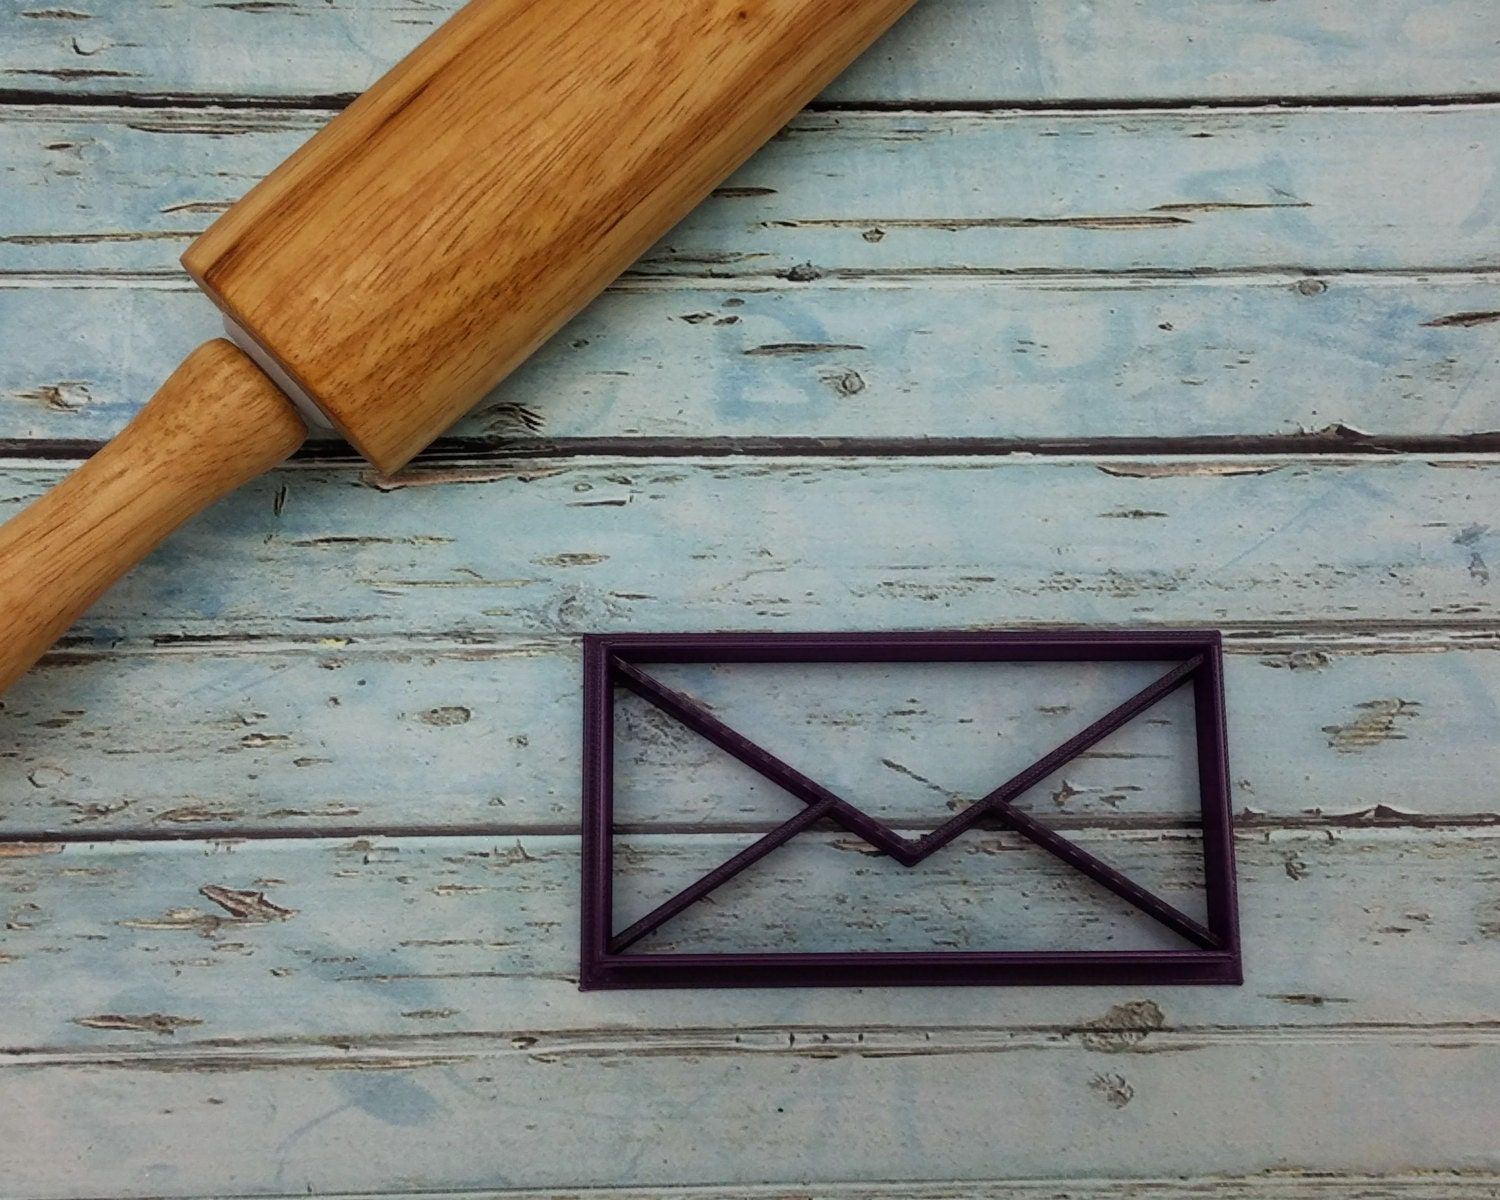 Envelope Cookie Cutter and Fondant Cutter by